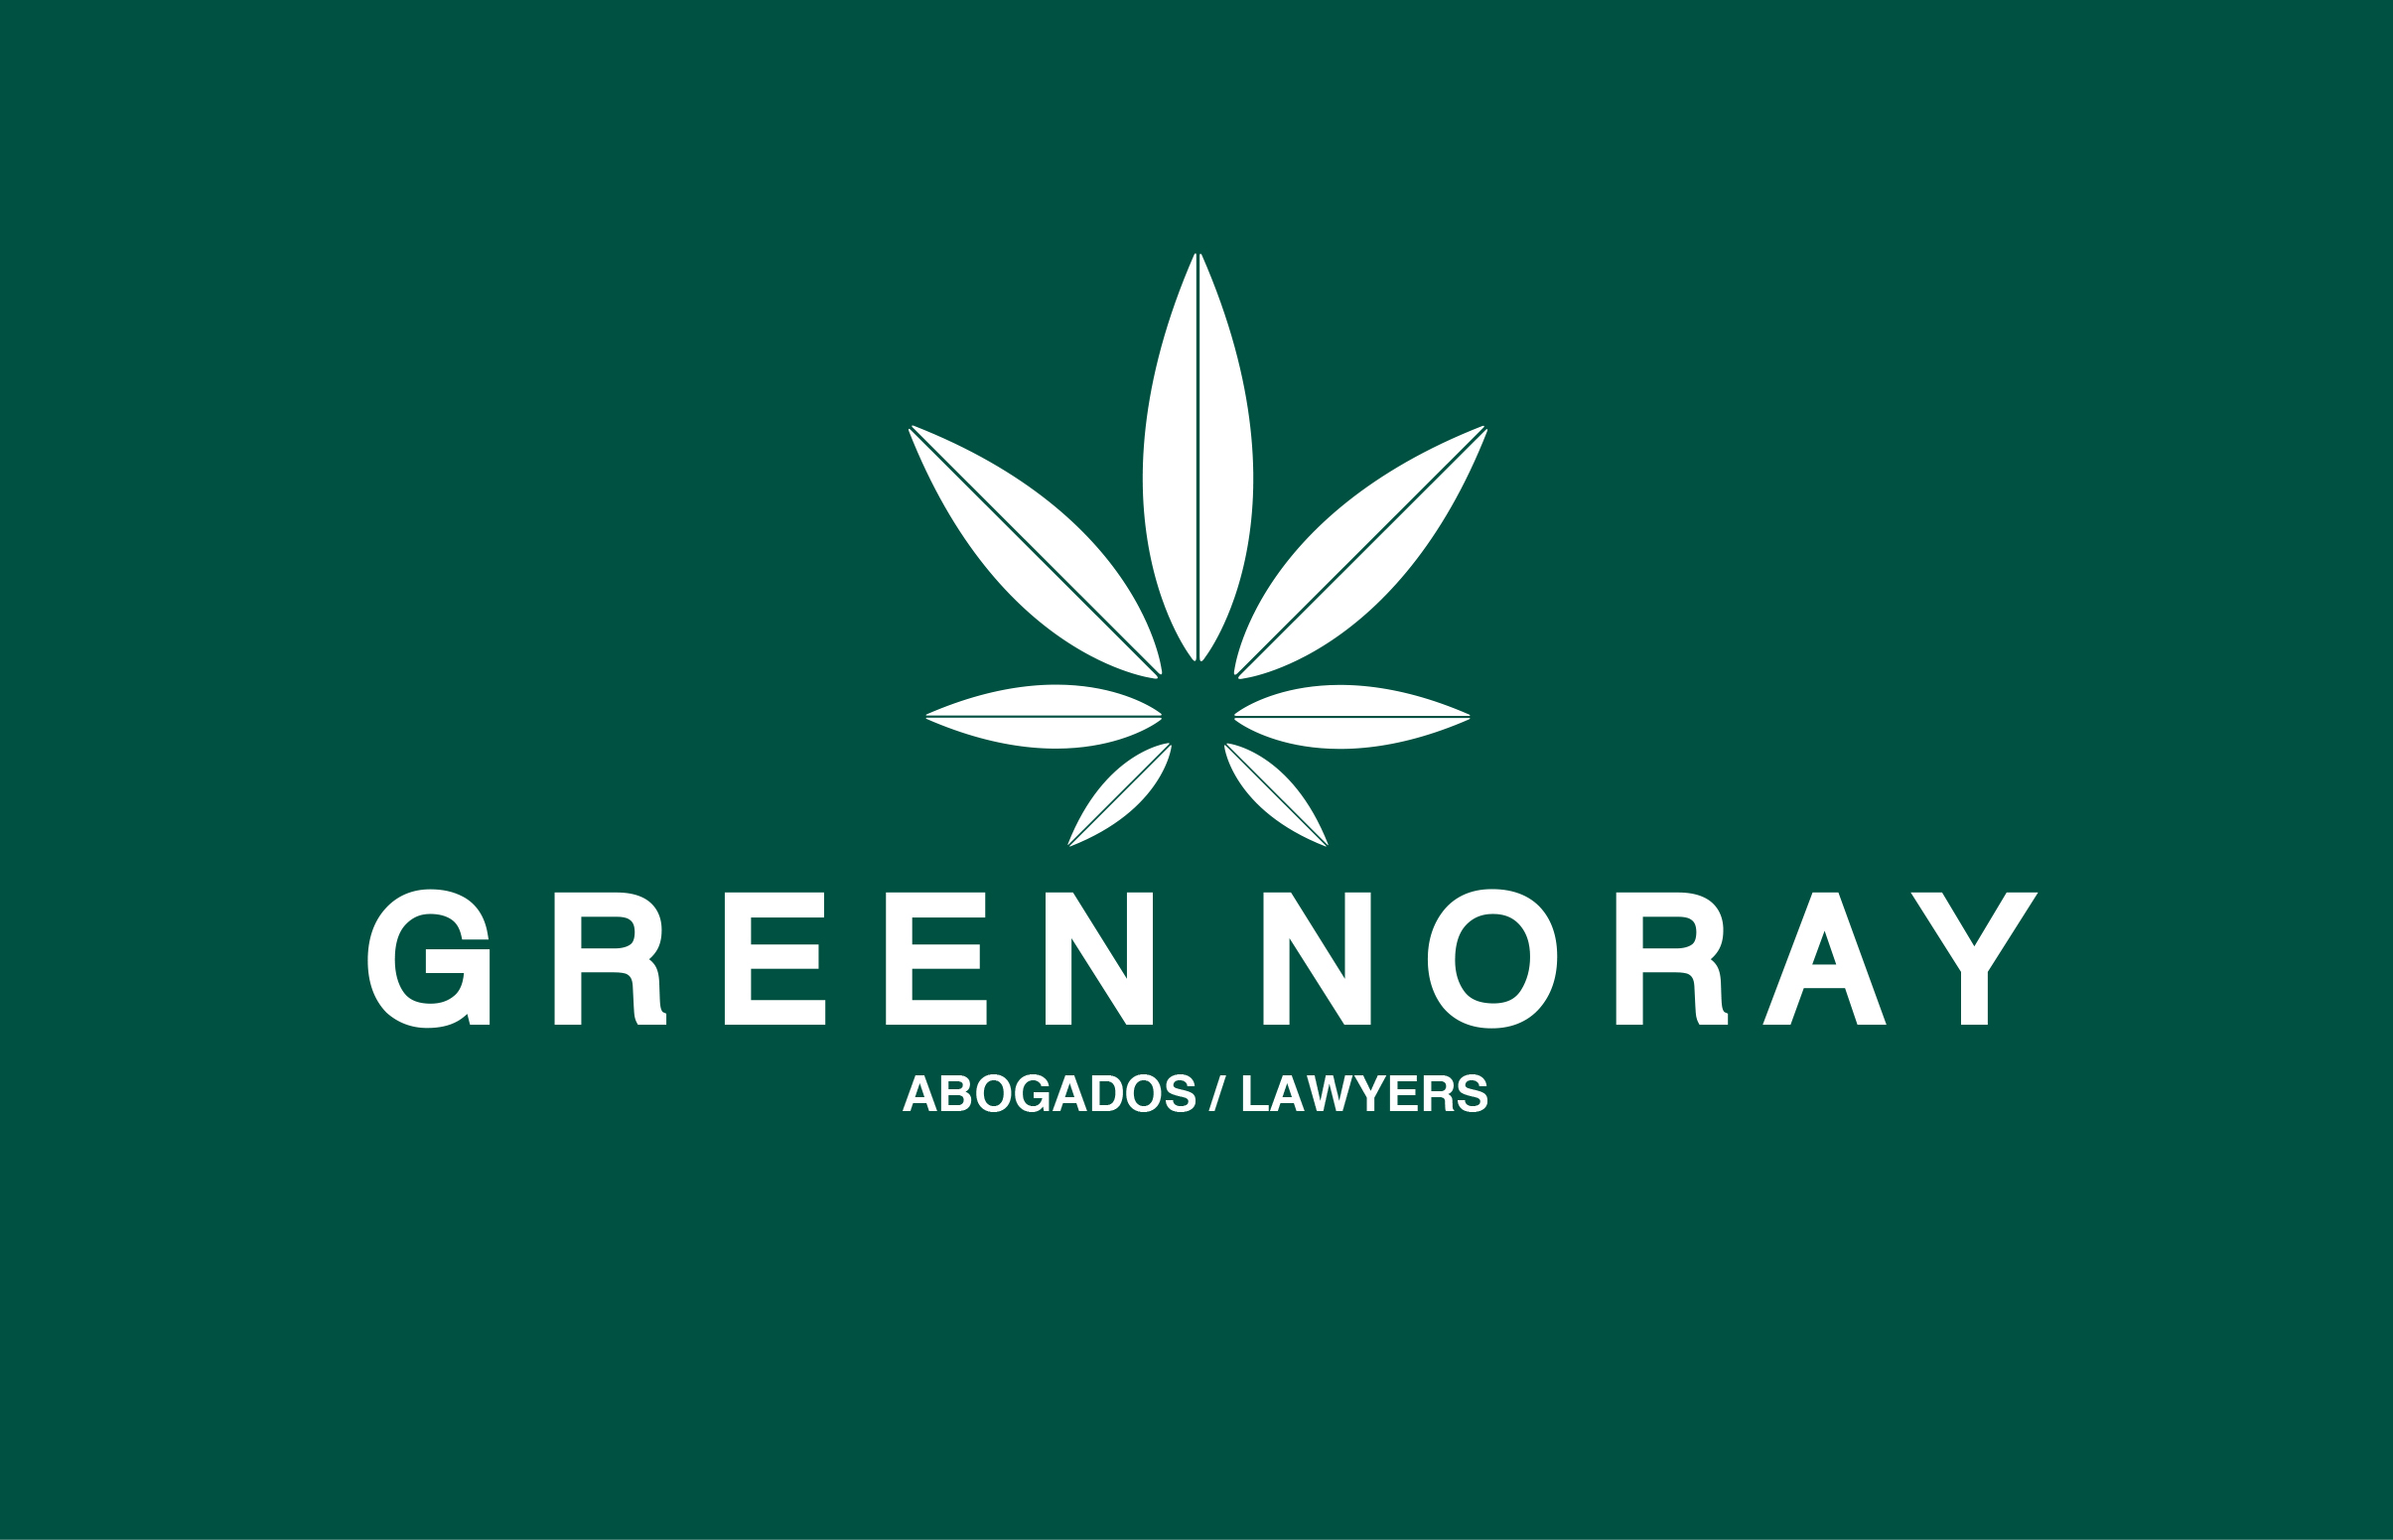 Logo-Greennoray-delantera